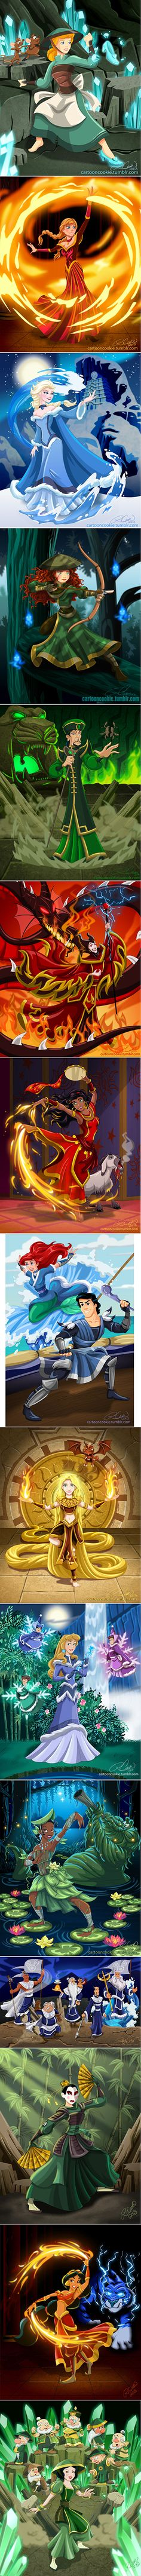 More Disney/Avatar mash-ups